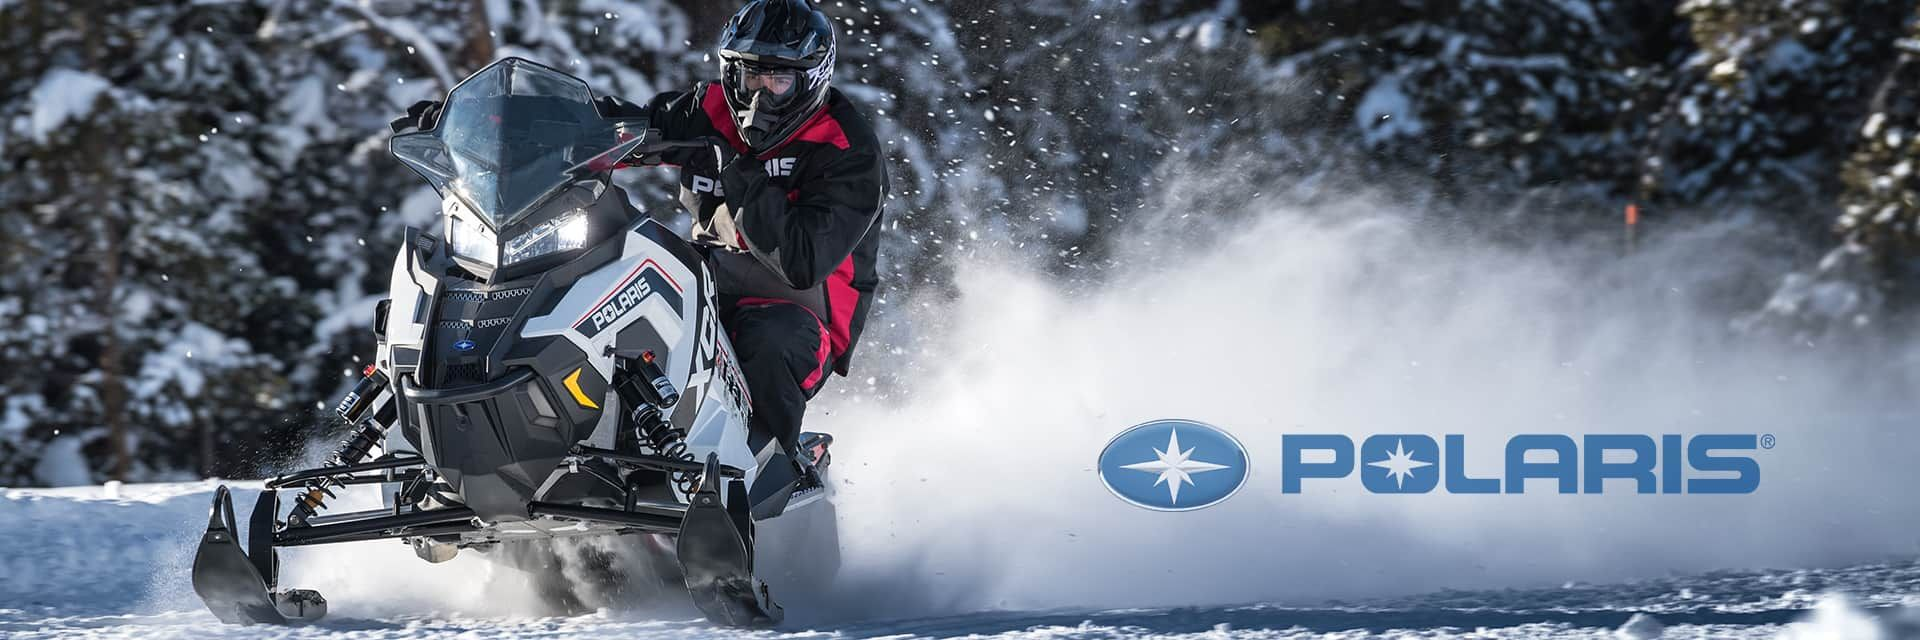 Polaris Snowmobiles are available at Central Maine Powersports | Lewiston, ME